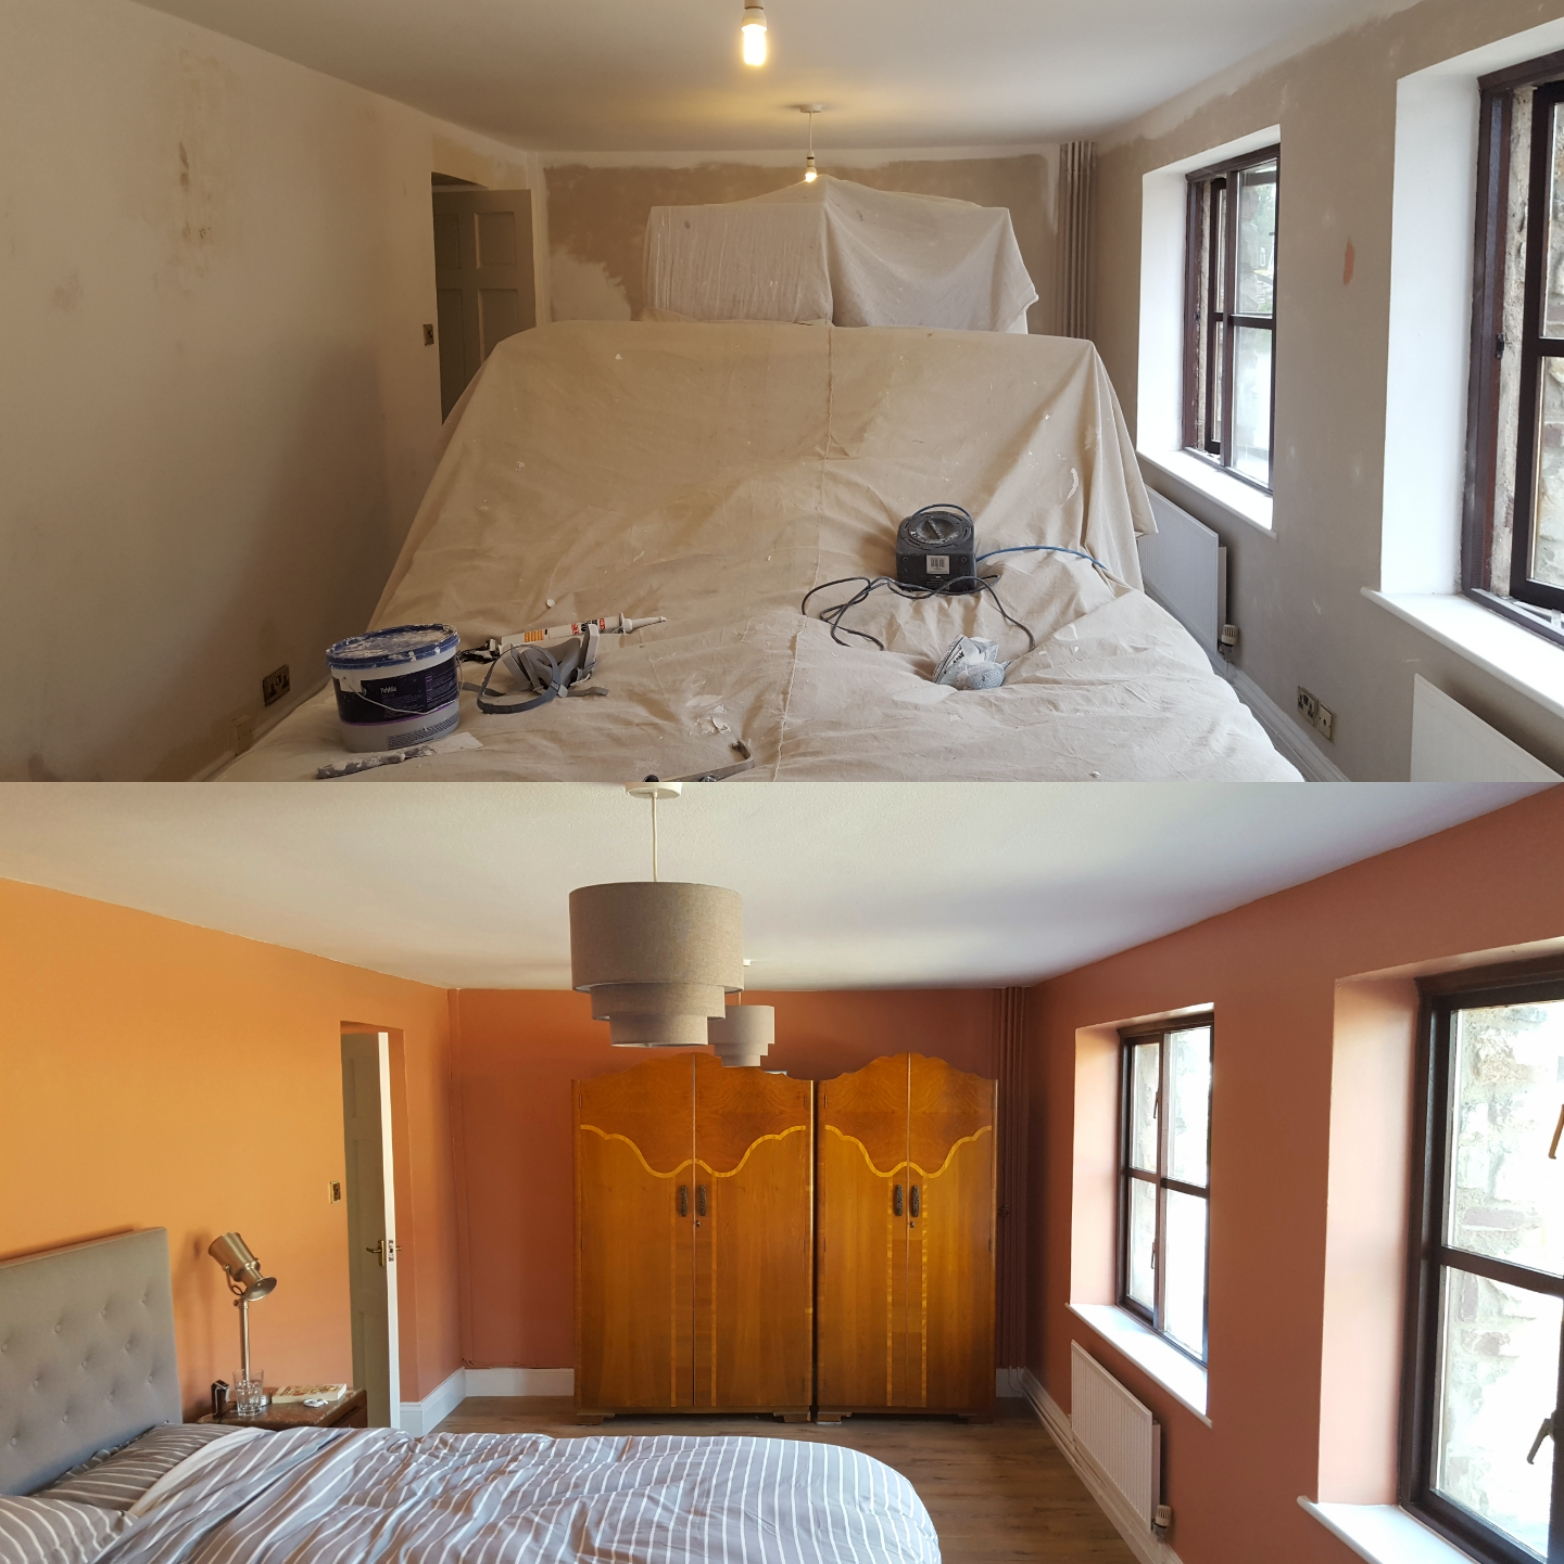 Decorated bedroom before and after - walls painted in dulux copper blush in castleton